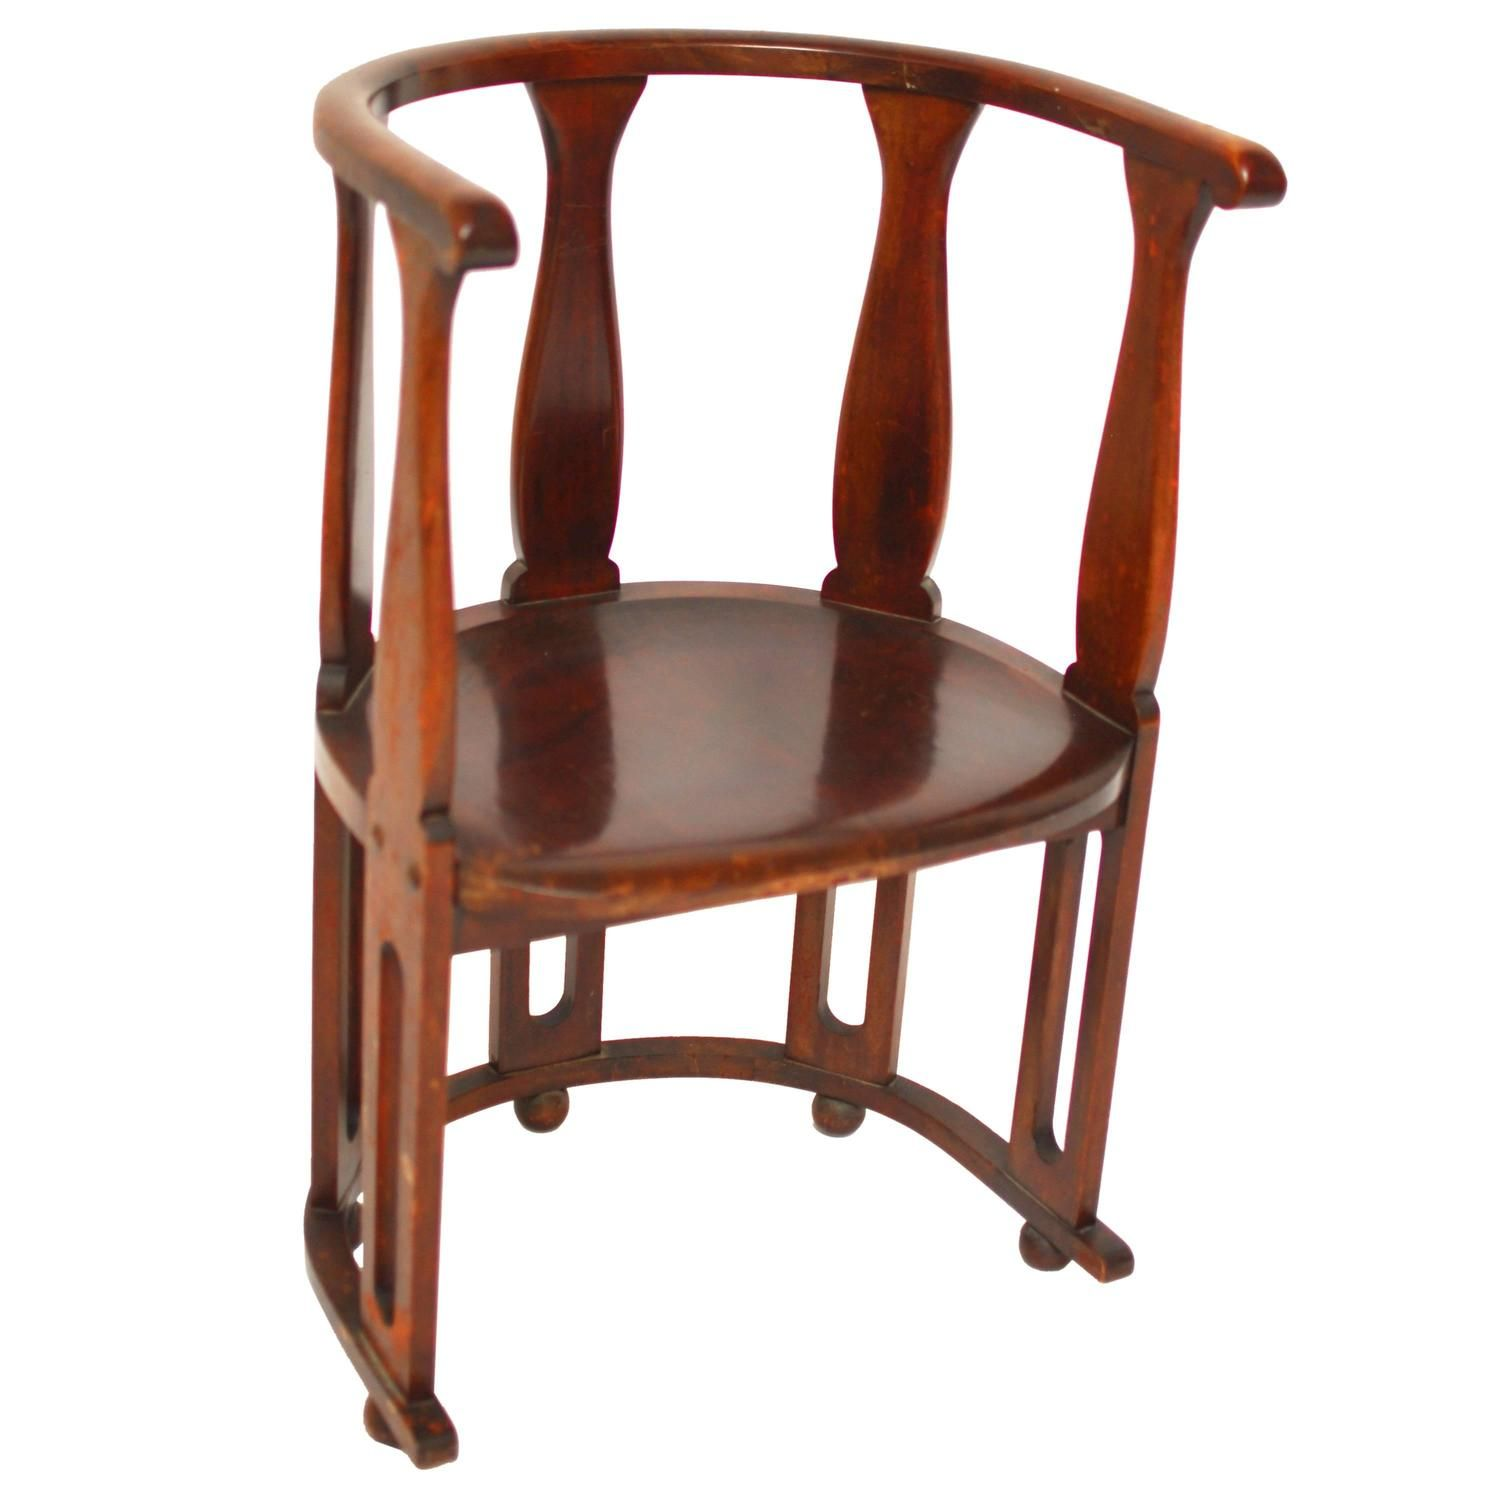 High back antique chairs - Arts And Crafts High Back Barrel Chair